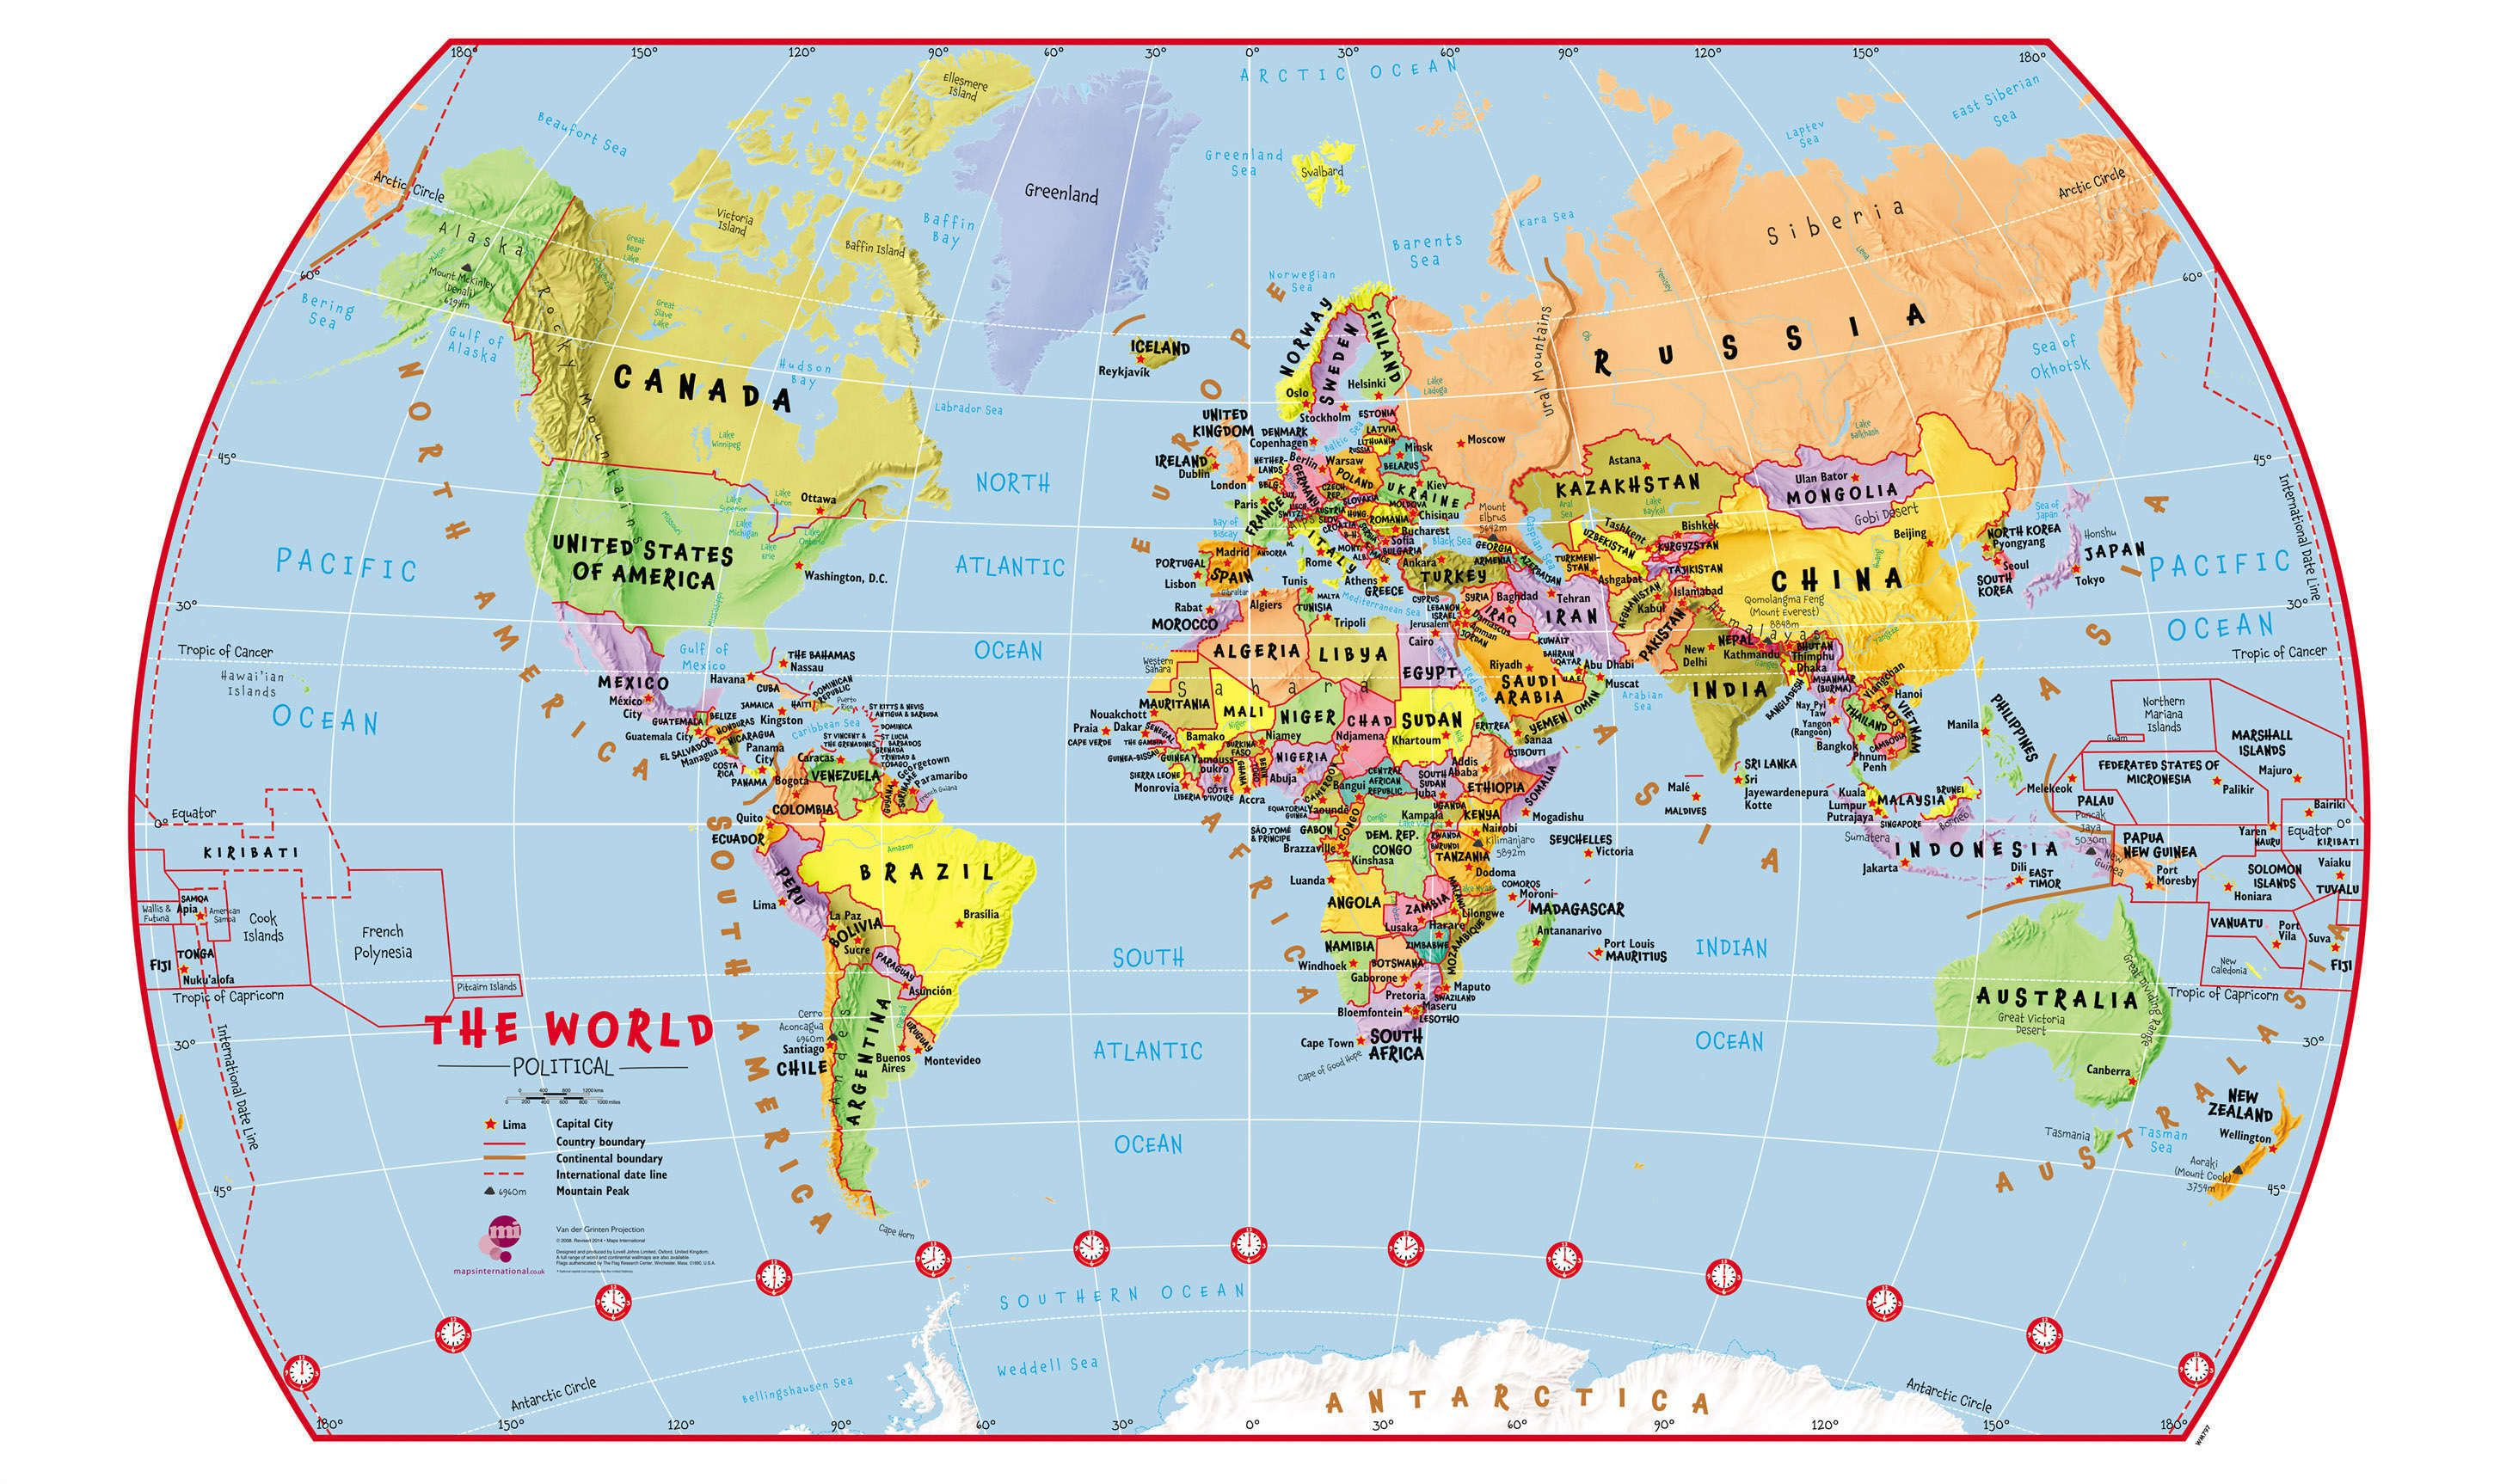 Elementary Political World Wall Map on historical map of the world, a school map of the world, a small map of the world, ethnic map of the world, cultural map of the world, religious map of the world, a globe of the world, diplomatic map of the world, geographical map of the world, linguistic map of the world, military map of the world, puerto rico map of the world, geopolitical map of the world, economic map of the world,